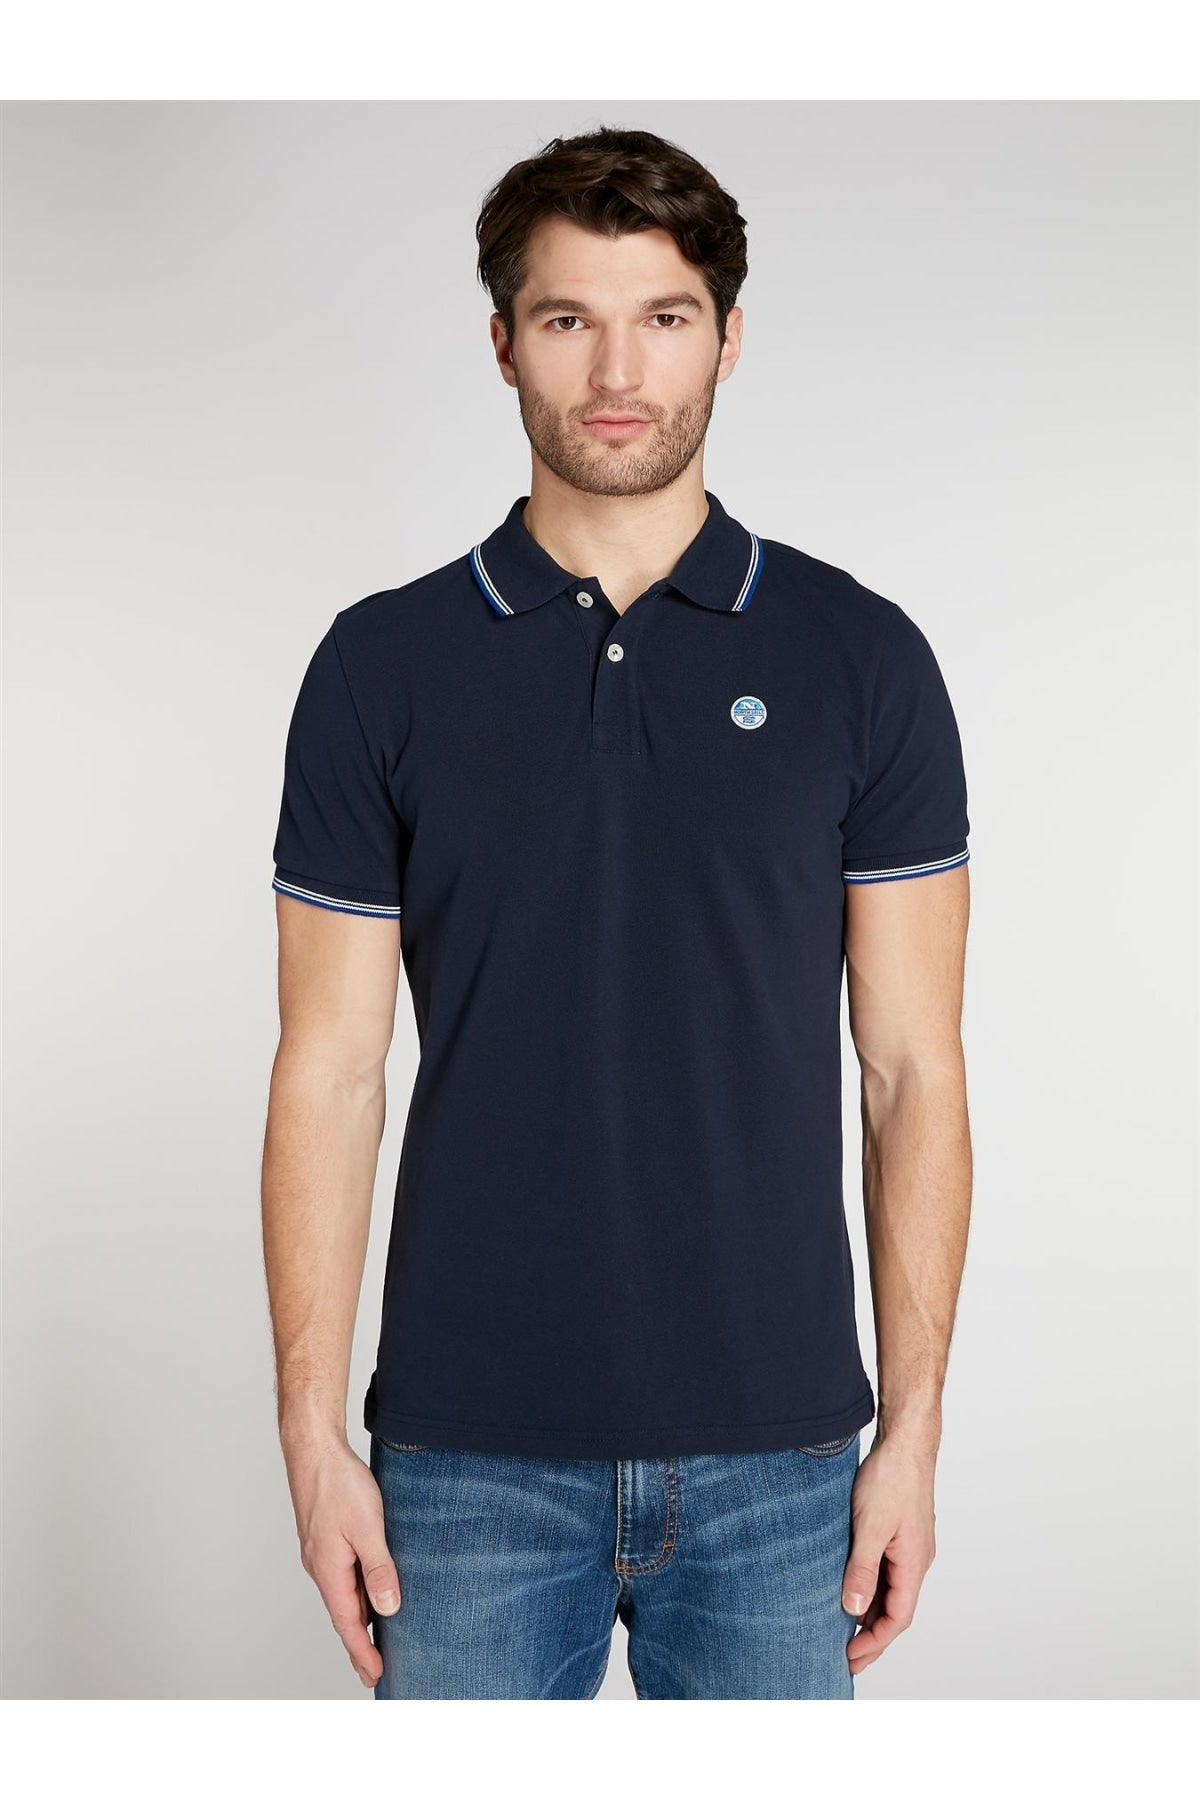 North Sails North Sails Cotton Pique Polo Shirt | Secret Label